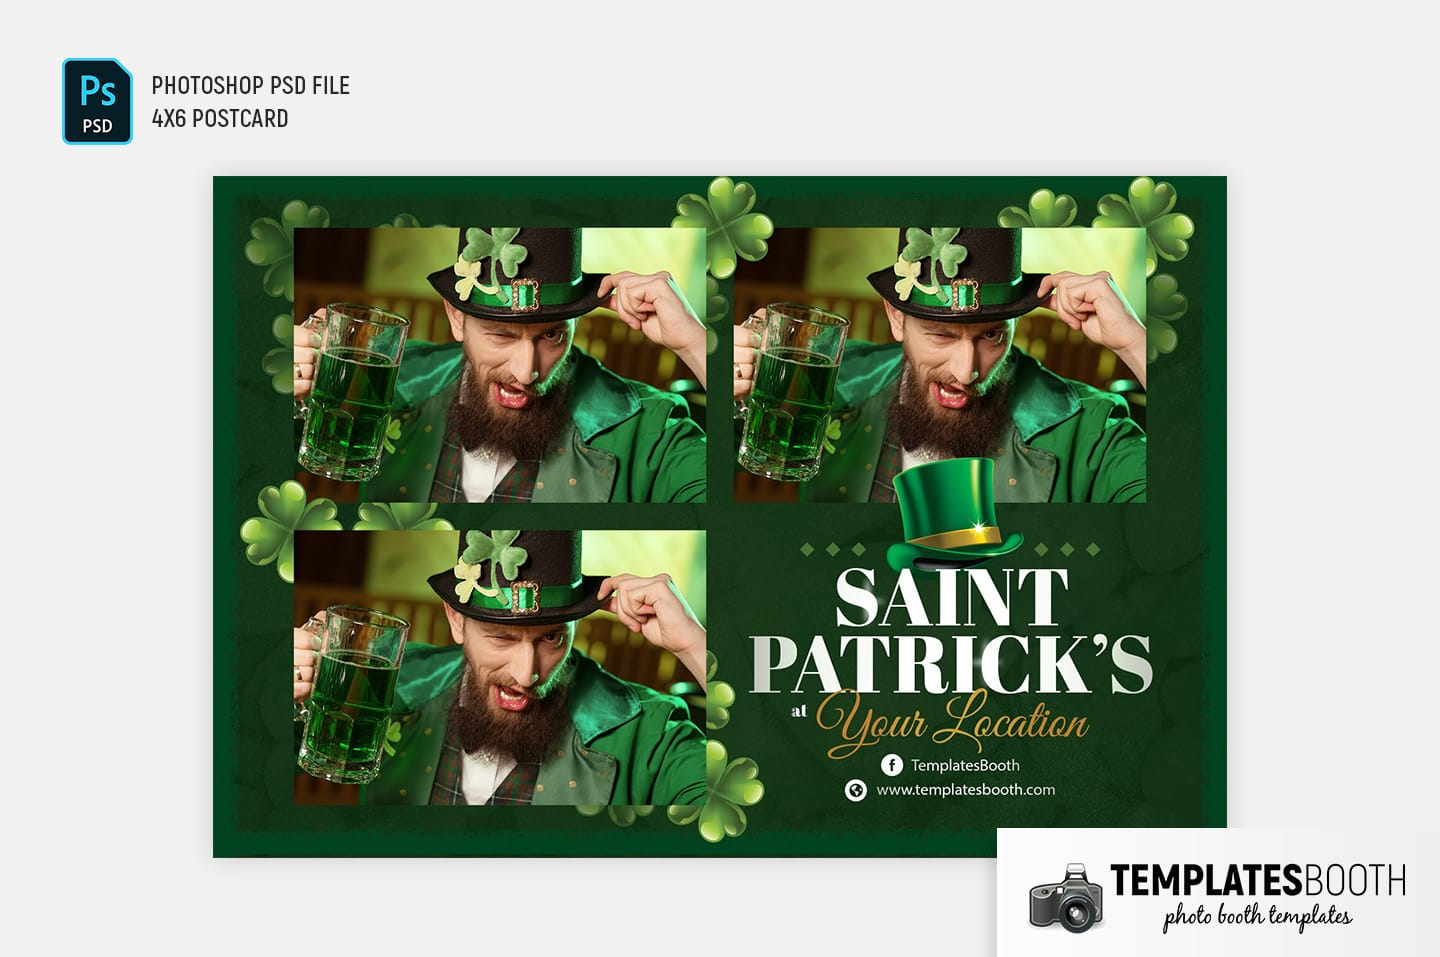 Saint Patrick's Day Photo Booth Template (landscape postcard)